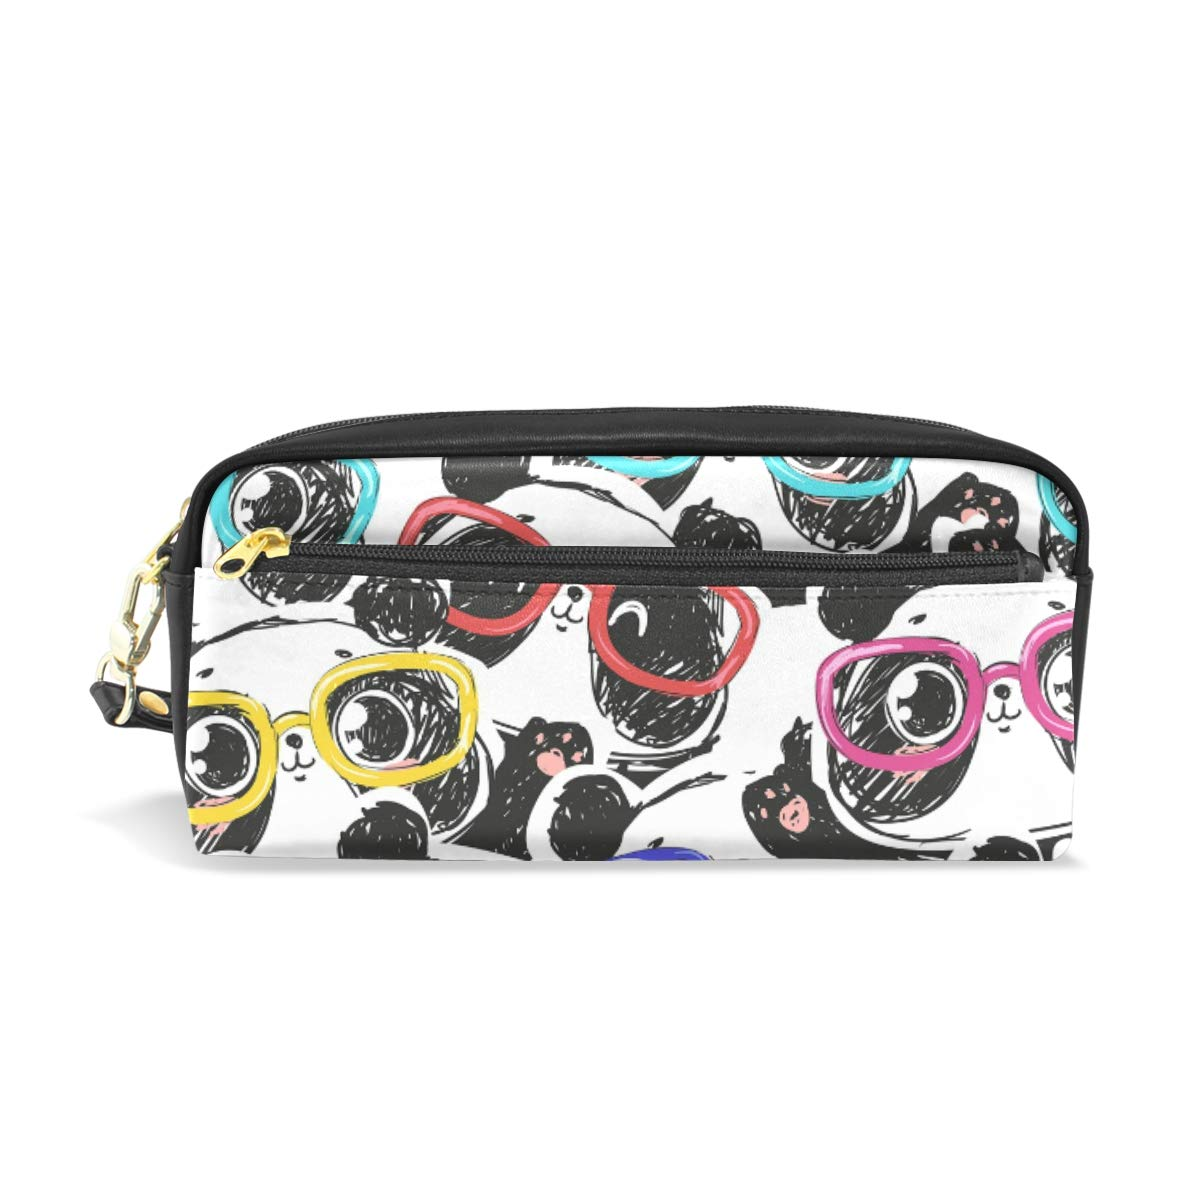 Mr.XZY Panda Pencil Case Pen Bag Cute Animal Pen Case for Boy Girl PU Leather with Zipper Pen Bag Multi-Function Stationary Case 2010332